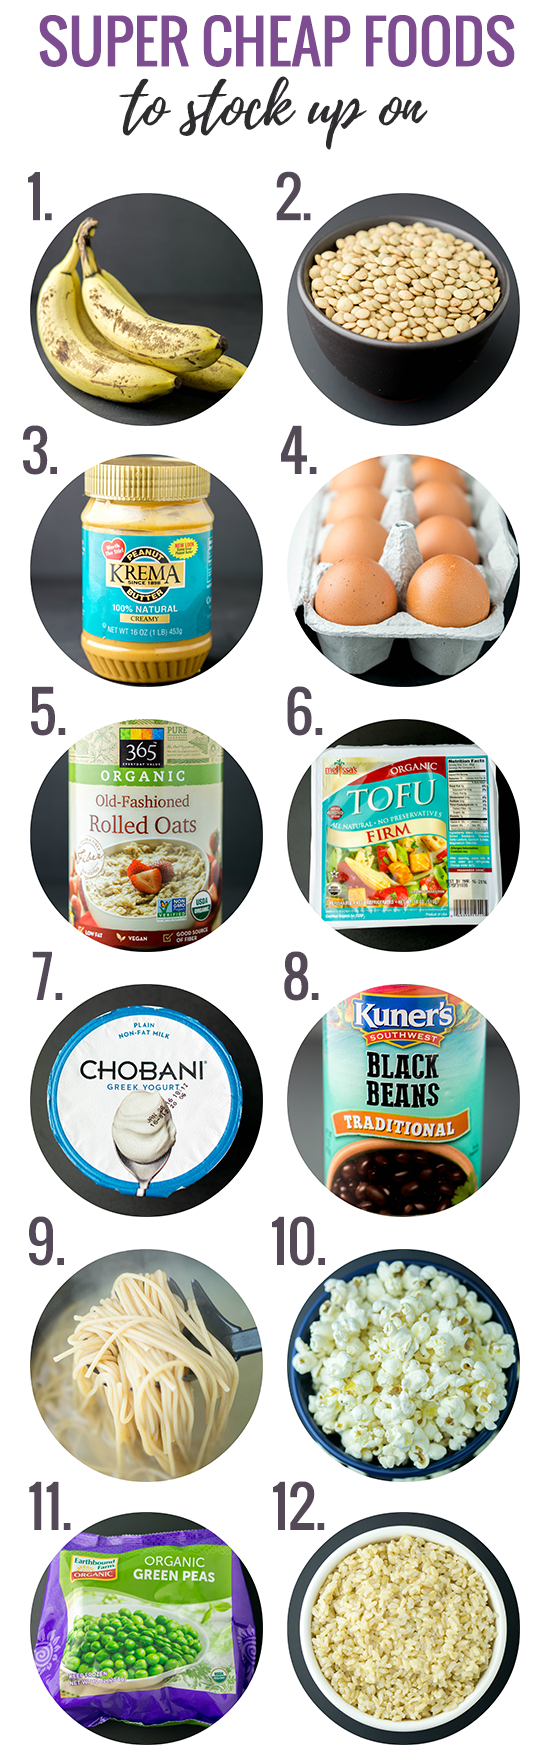 Grocery Shopping on a Budget -- Super cheap foods to stock up on when money is tight! #healthy #eating #cheap #shopping #budget www.wakeuptowaffles.com